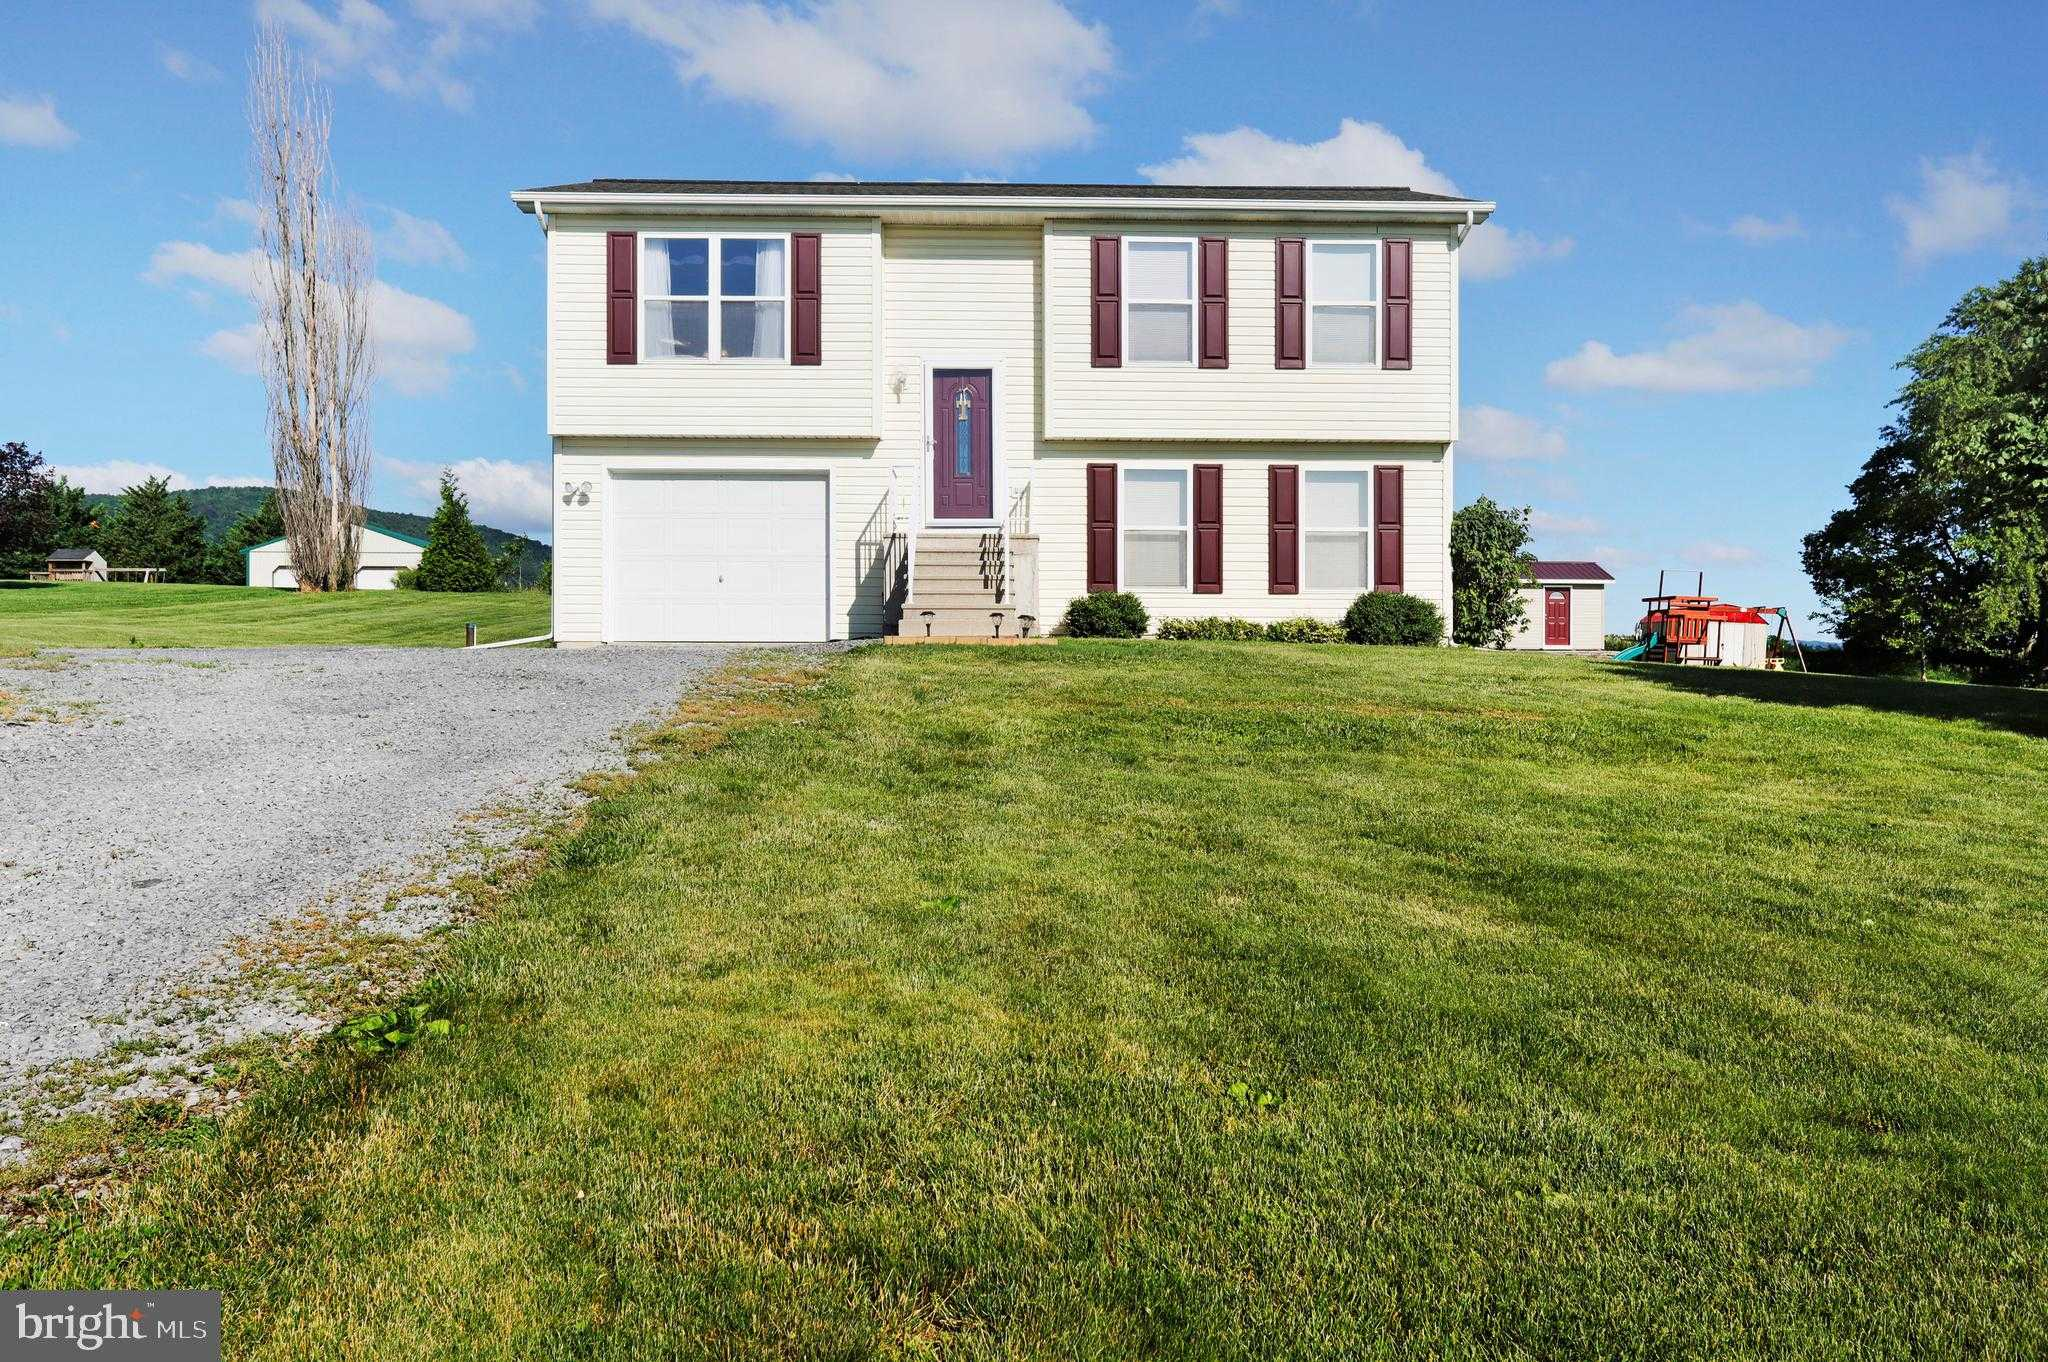 home for sale in mercersburg help u sell keystone realty rh helpusellkeystonerealty com